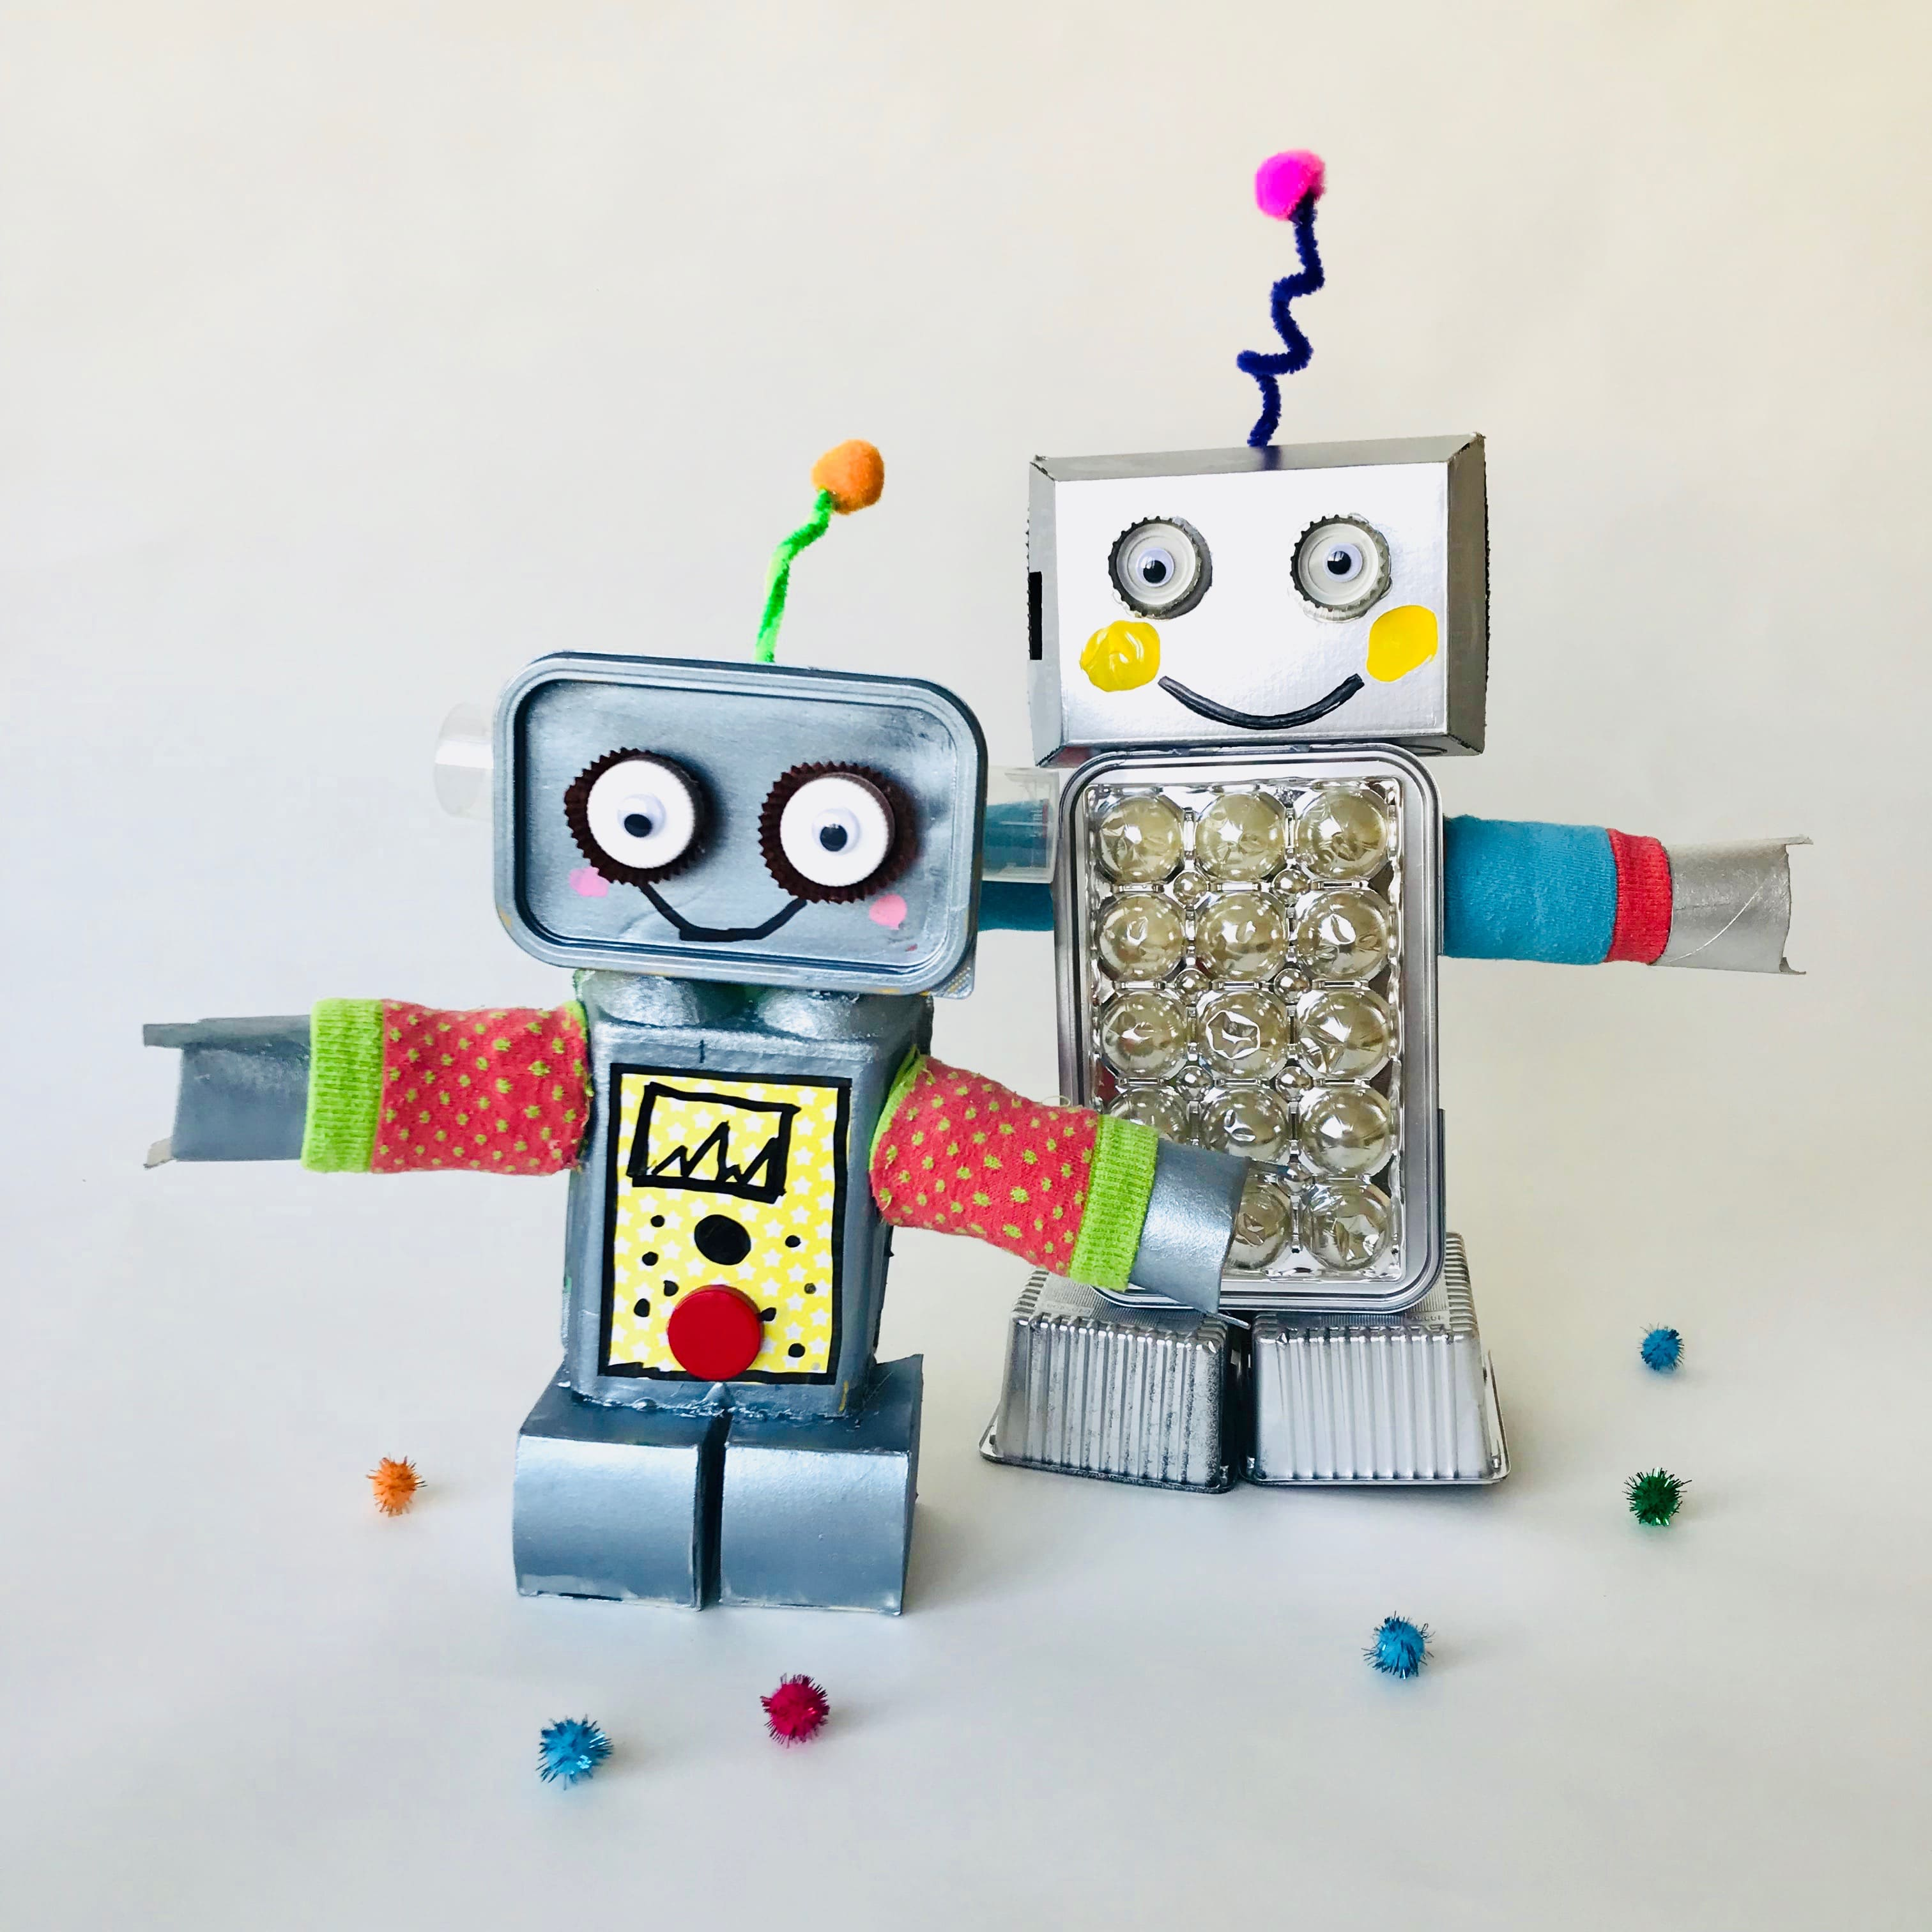 DIY Trash Roboter aus Verpackungsmaterial selber machen, Upcycling